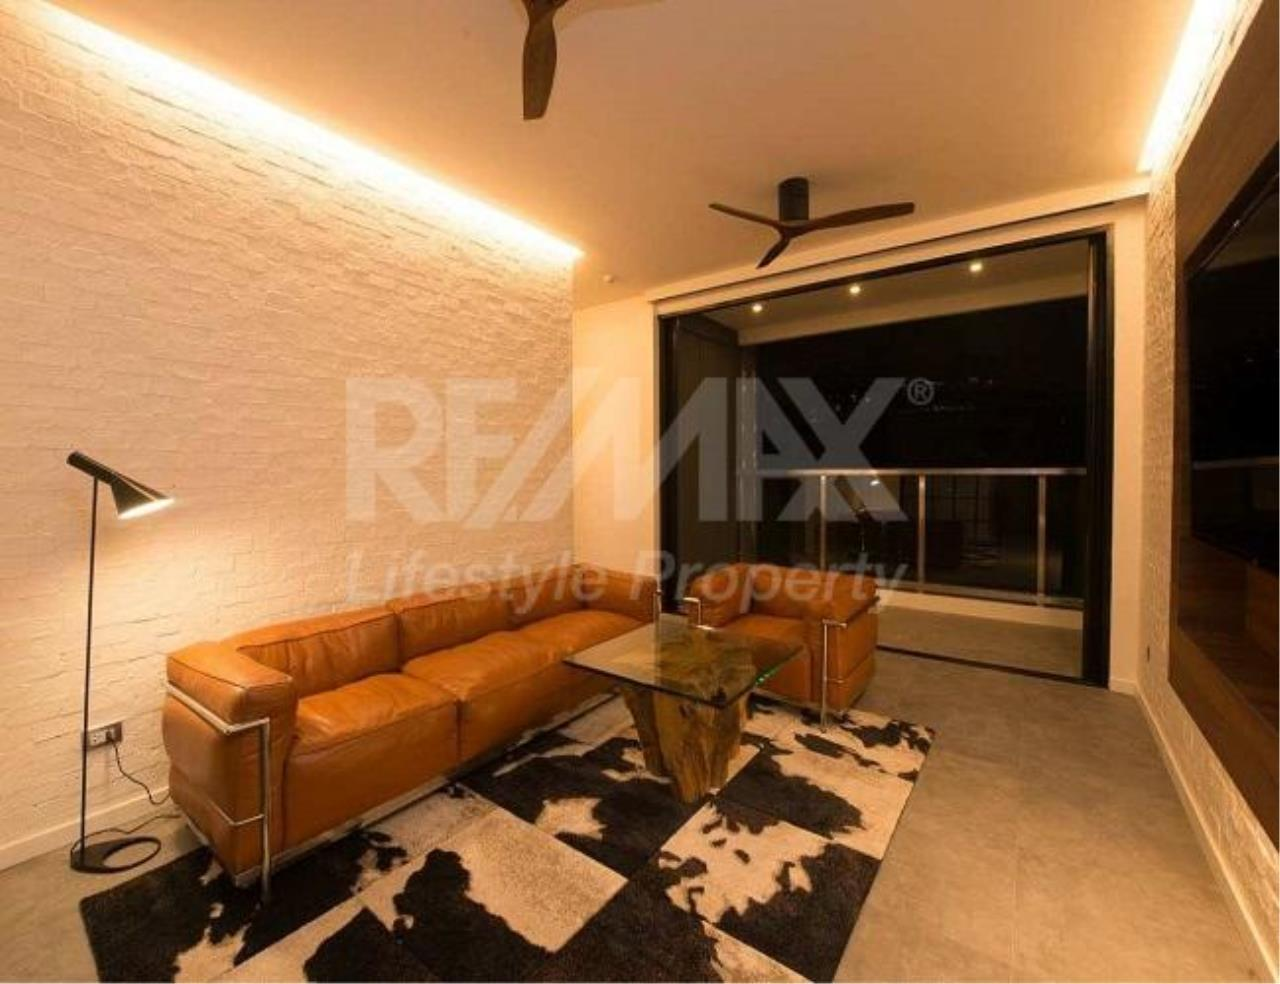 RE/MAX LifeStyle Property Agency's Penthouse Condominium 5